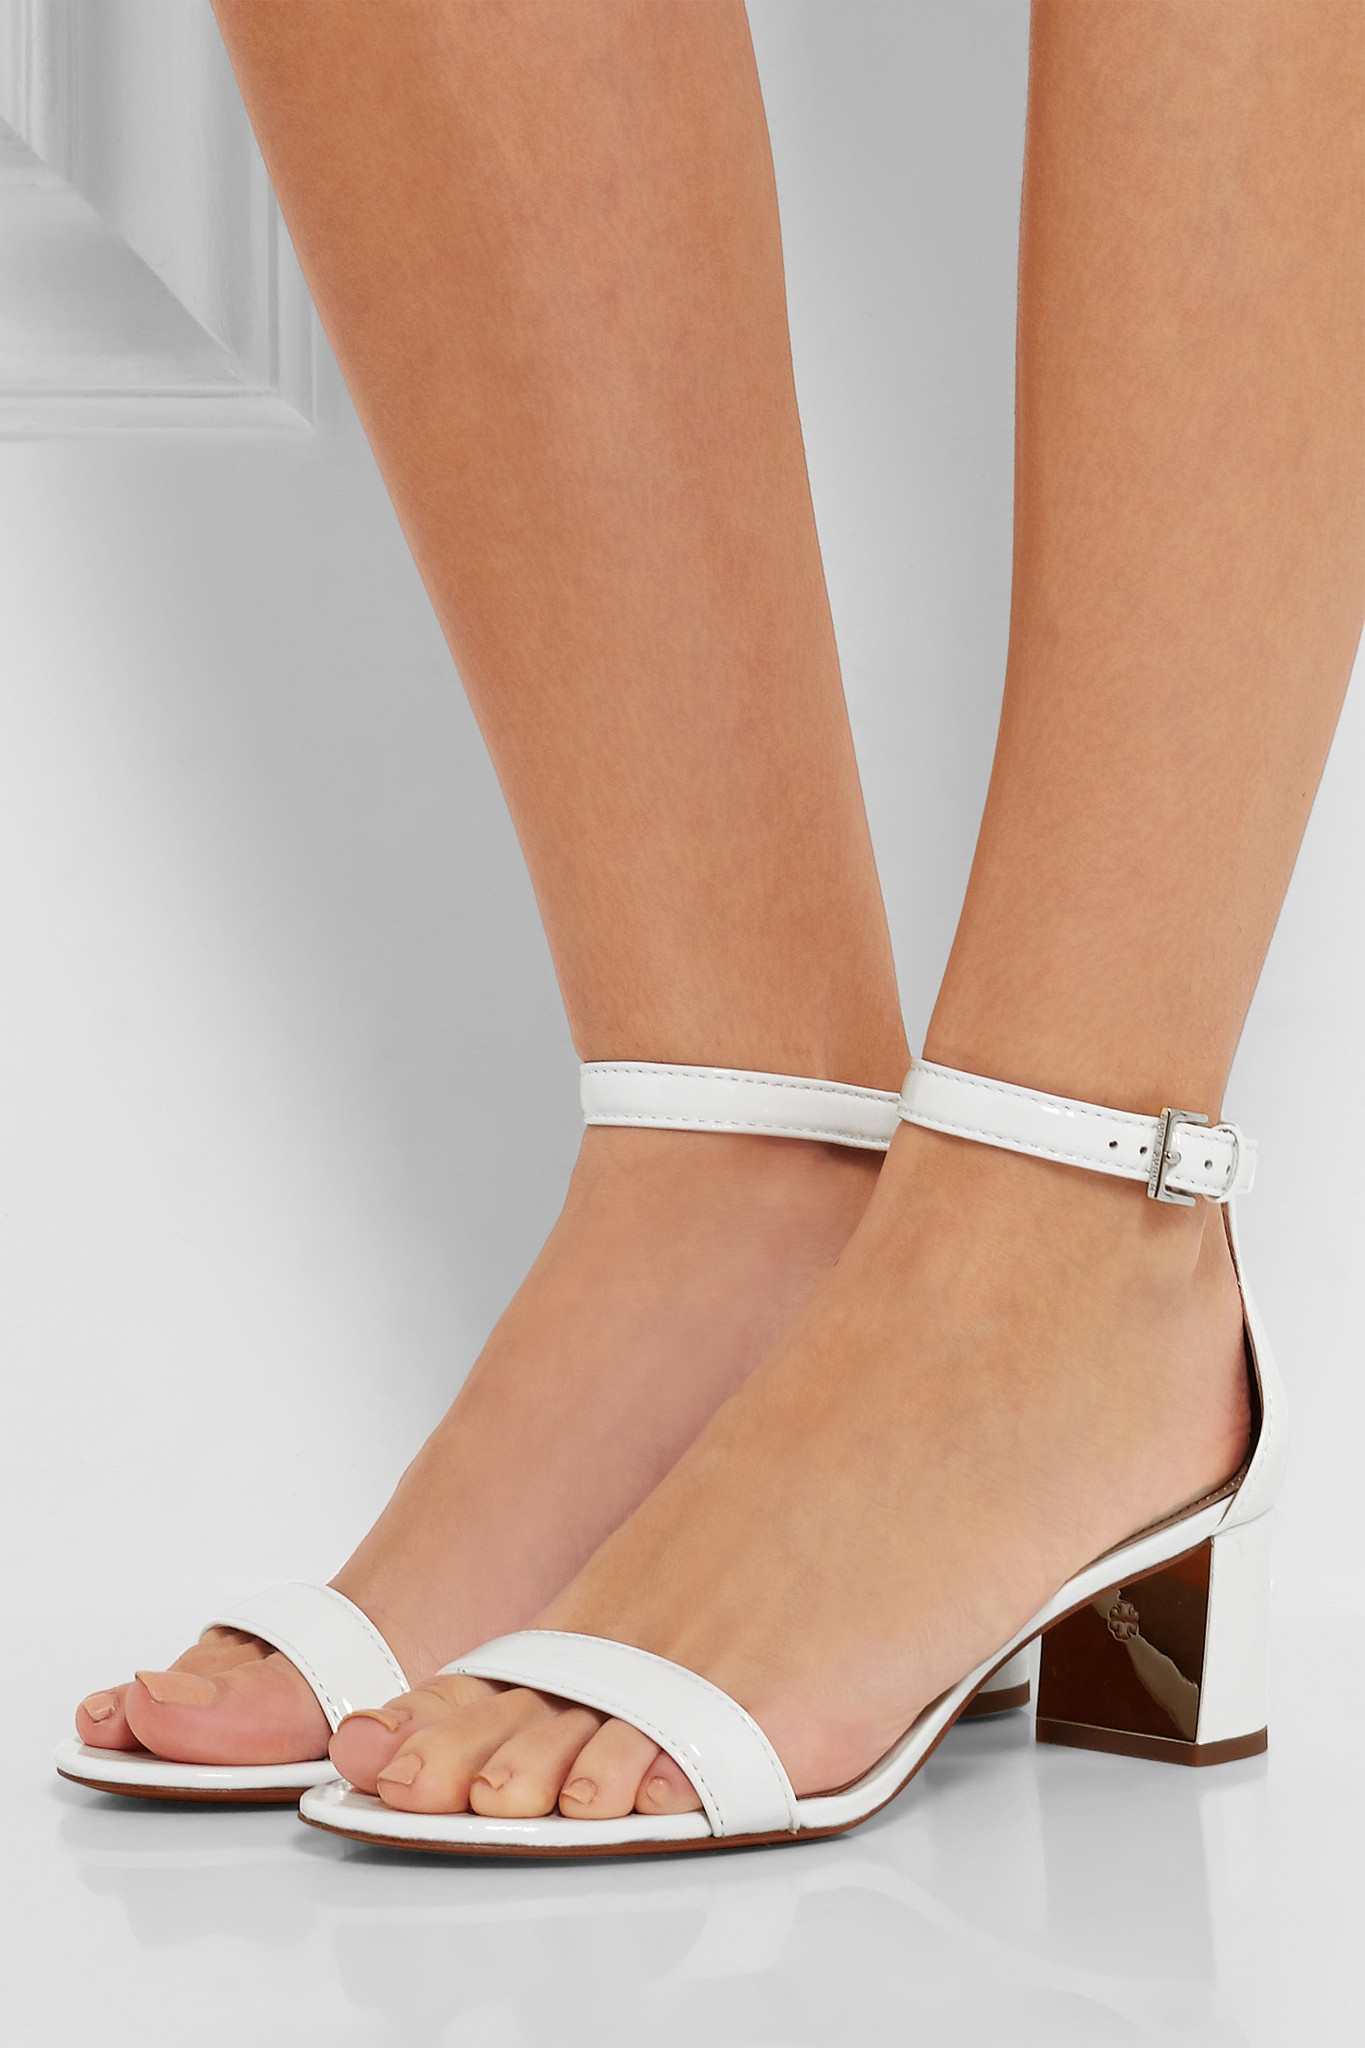 353d16ebf Lyst - Tory Burch Cecile Patent-leather Sandals in White